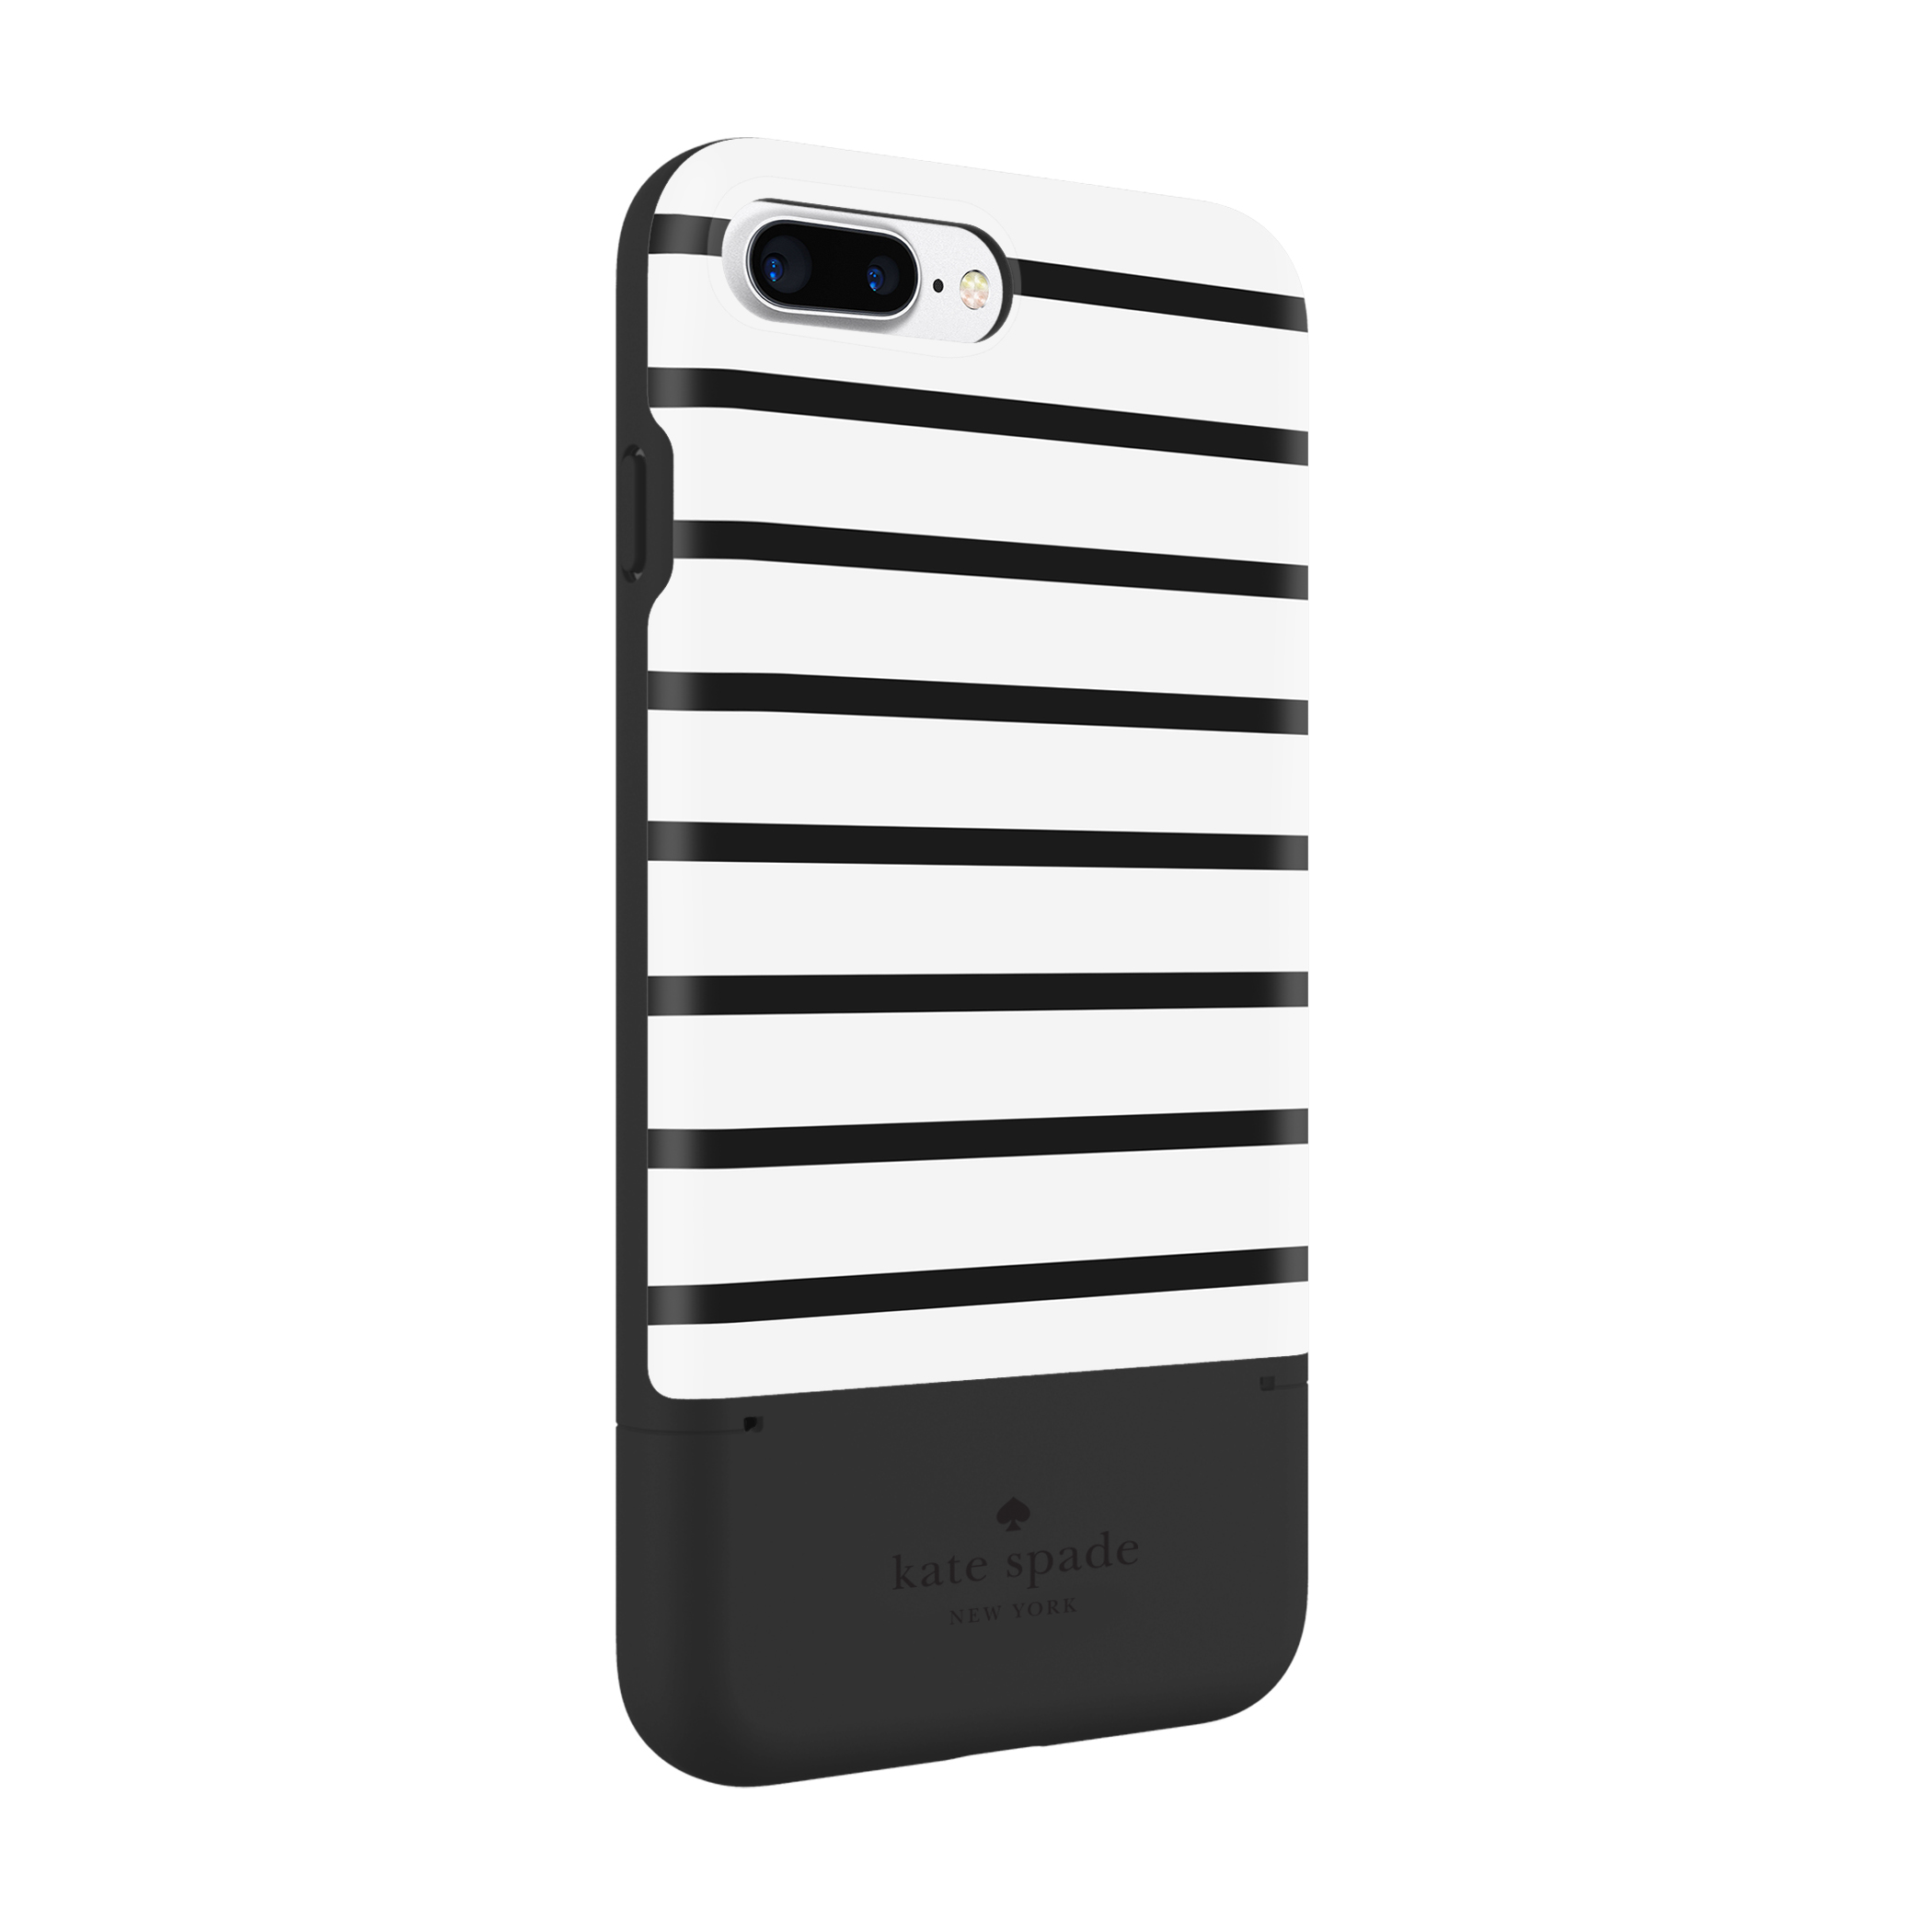 new product 35970 e06fb Kate Spade New York Credit Card Case for iPhone 7 Plus - Surprise Stripe  Black/White